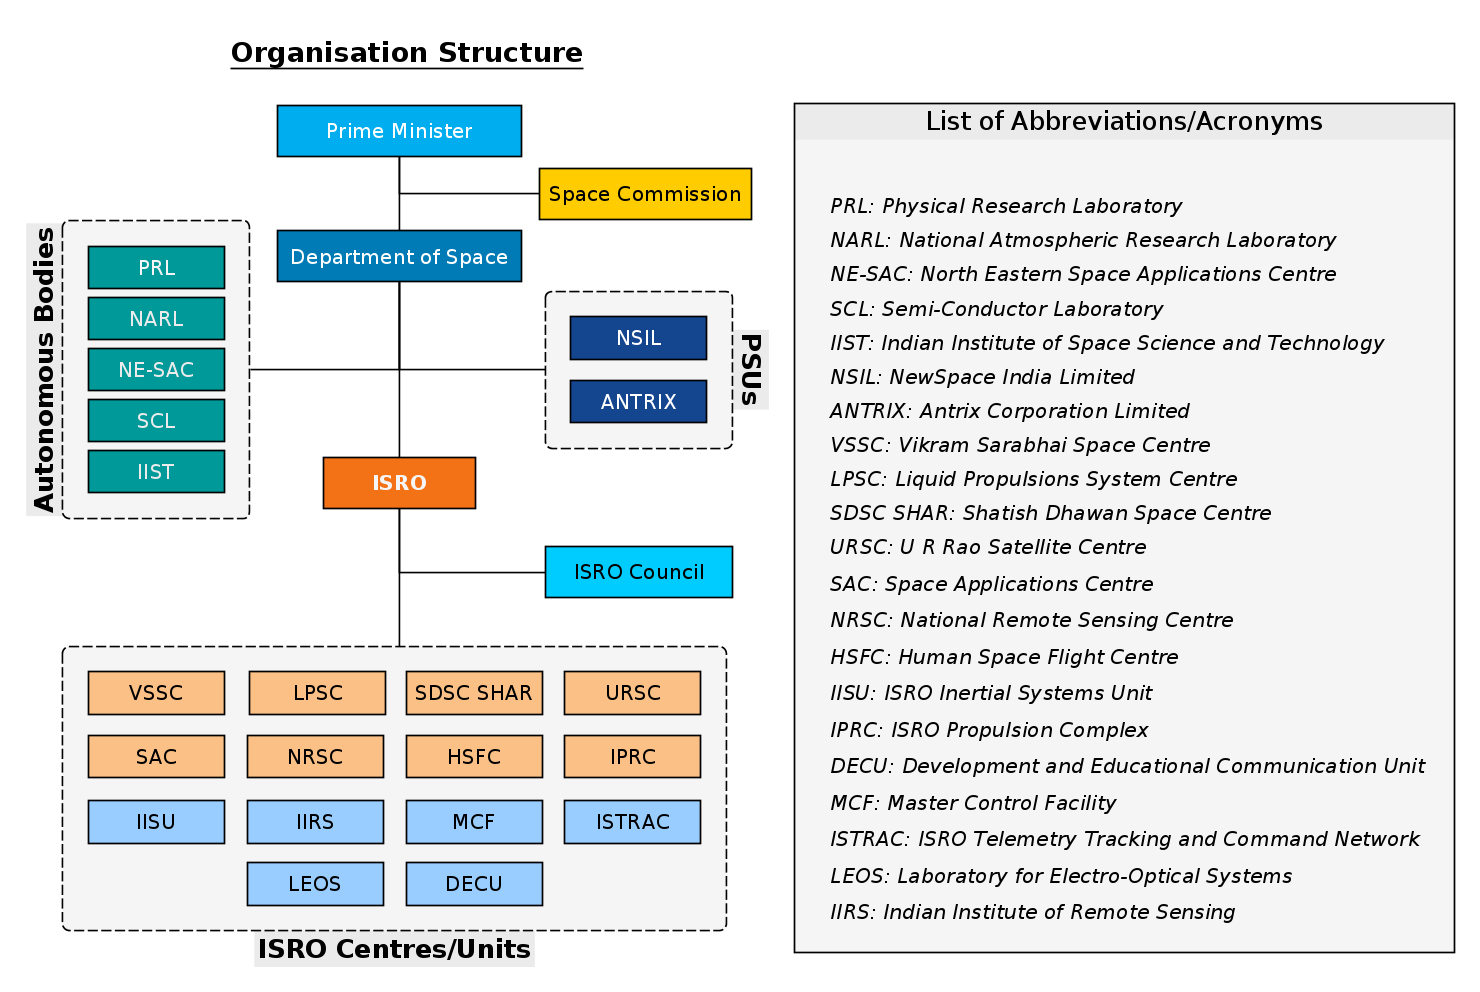 Organizational Chart Template: Department of Space (India) - organization chart.jpg ,Chart